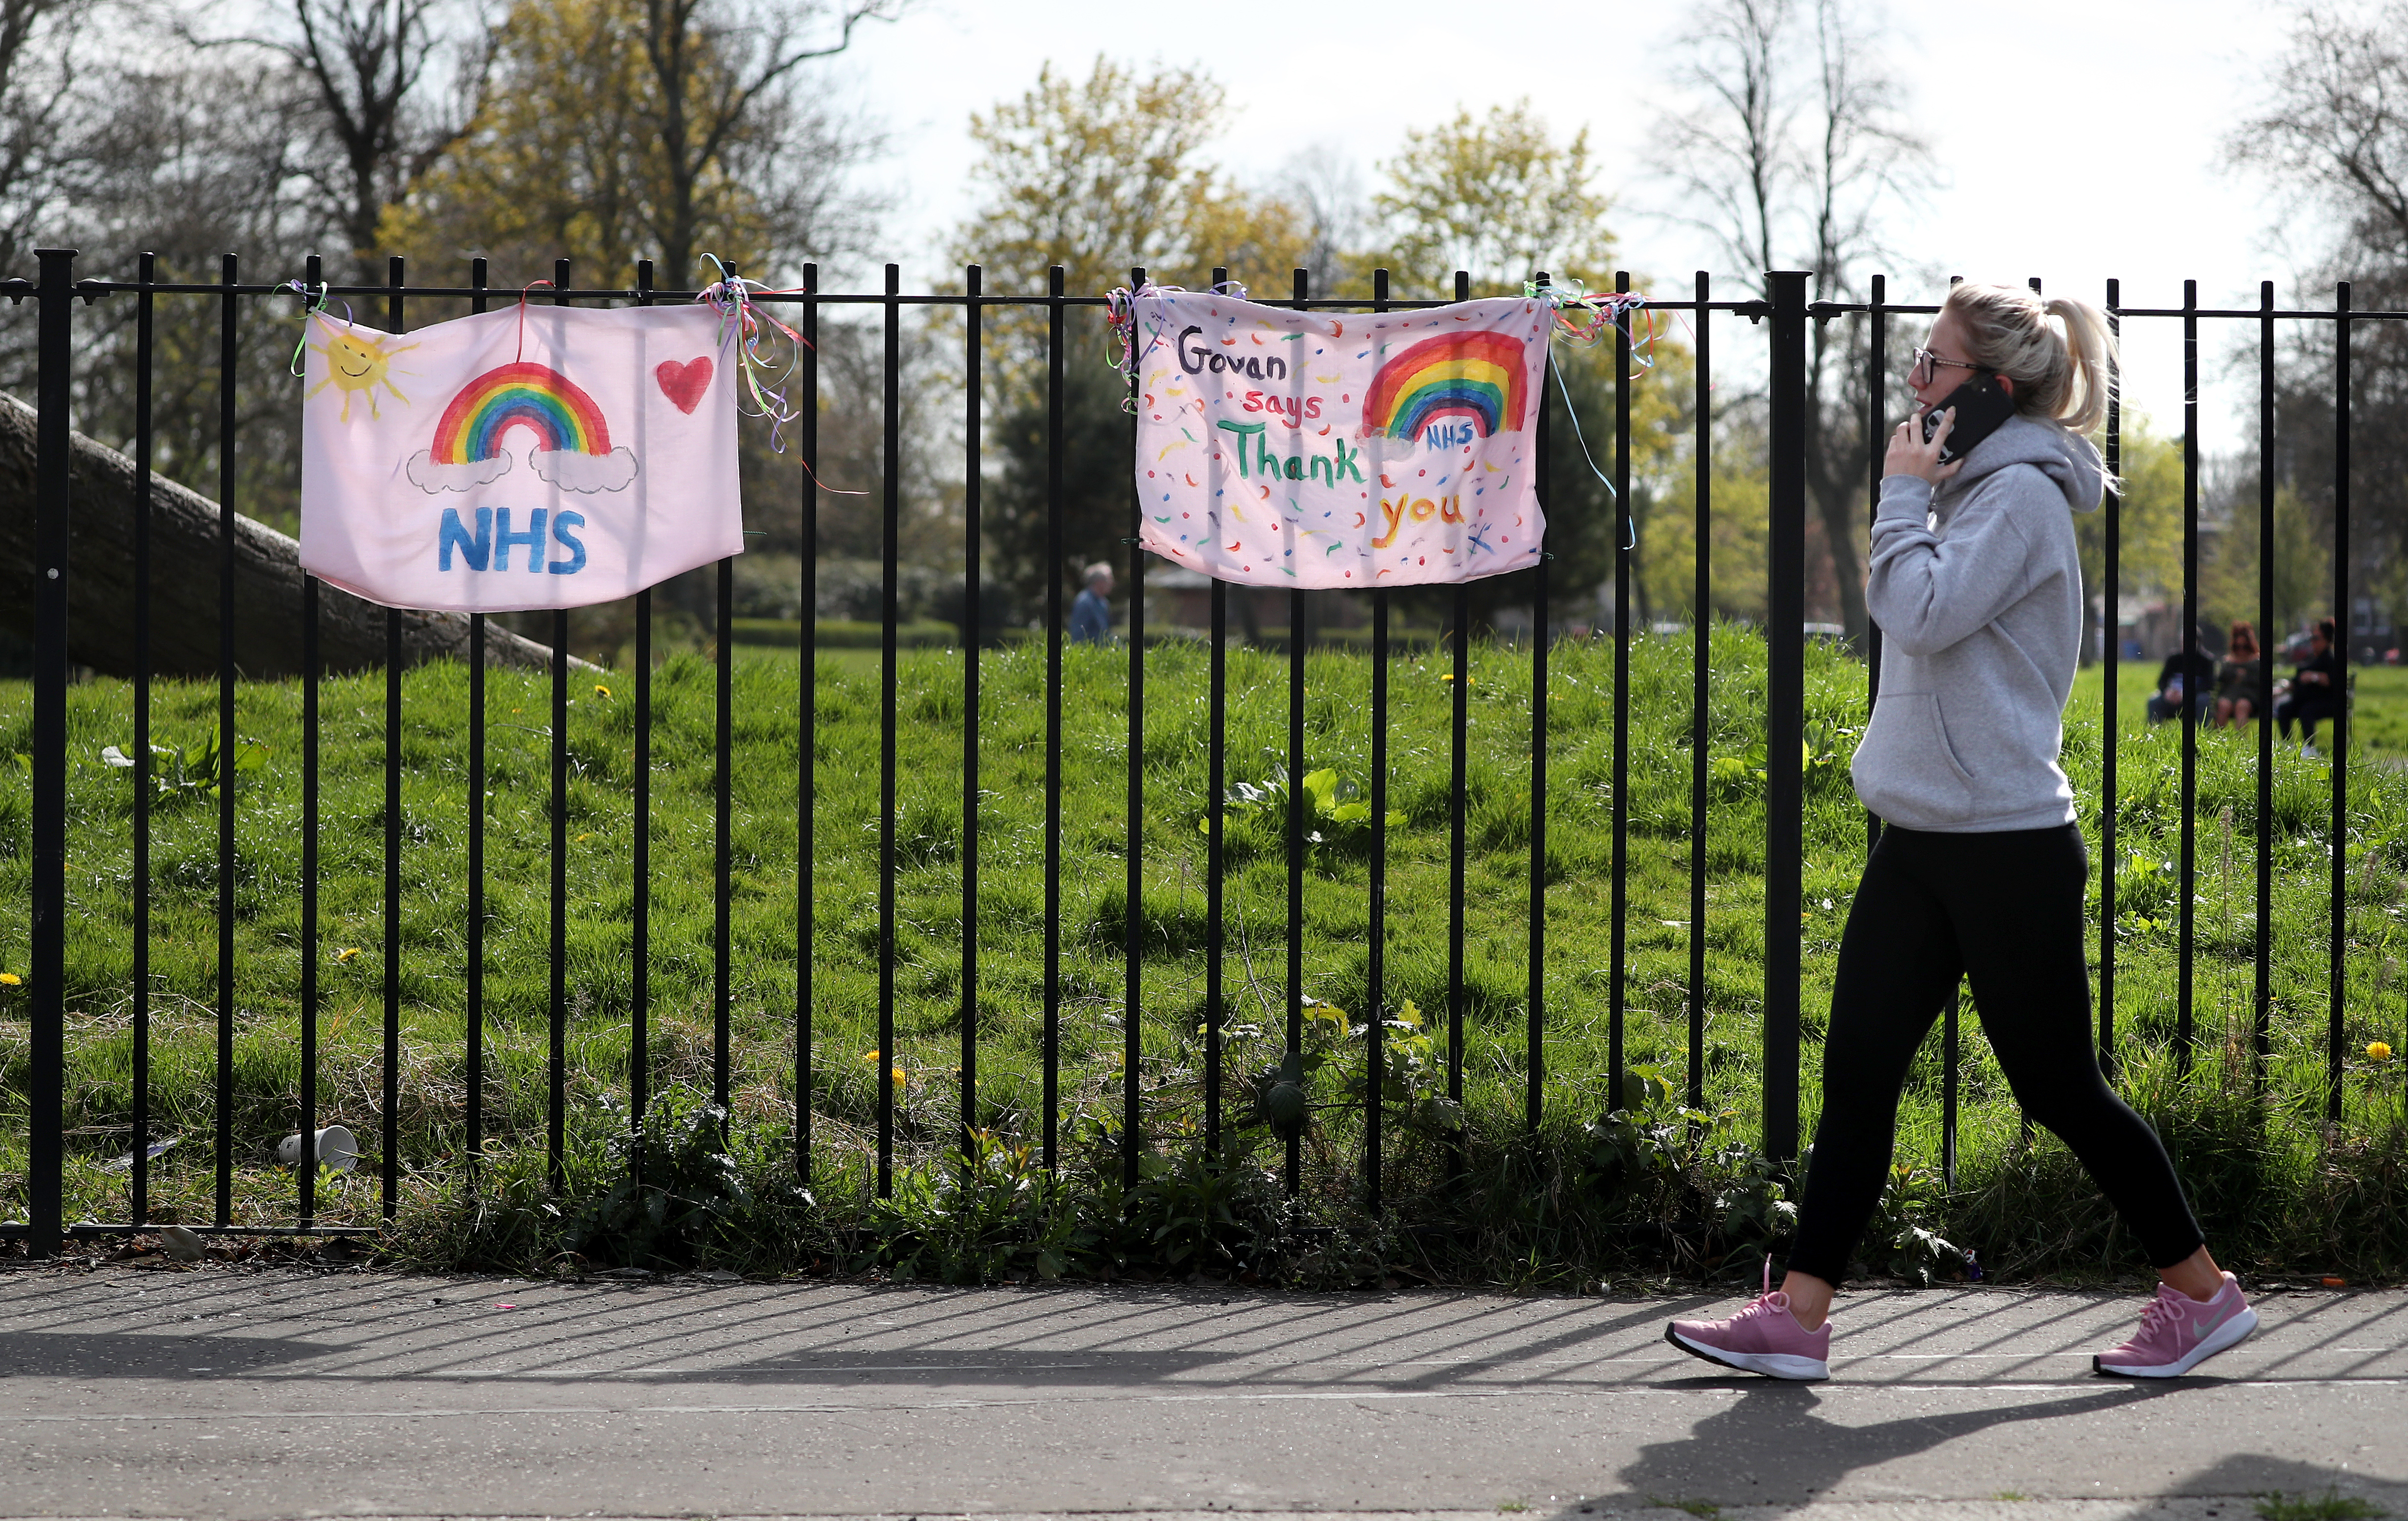 A woman walks past NHS tributes which are painted on pillow cases attached to the fence at Elder Park in Glasgow as the UK continues in lockdown to help curb the spread of the coronavirus.